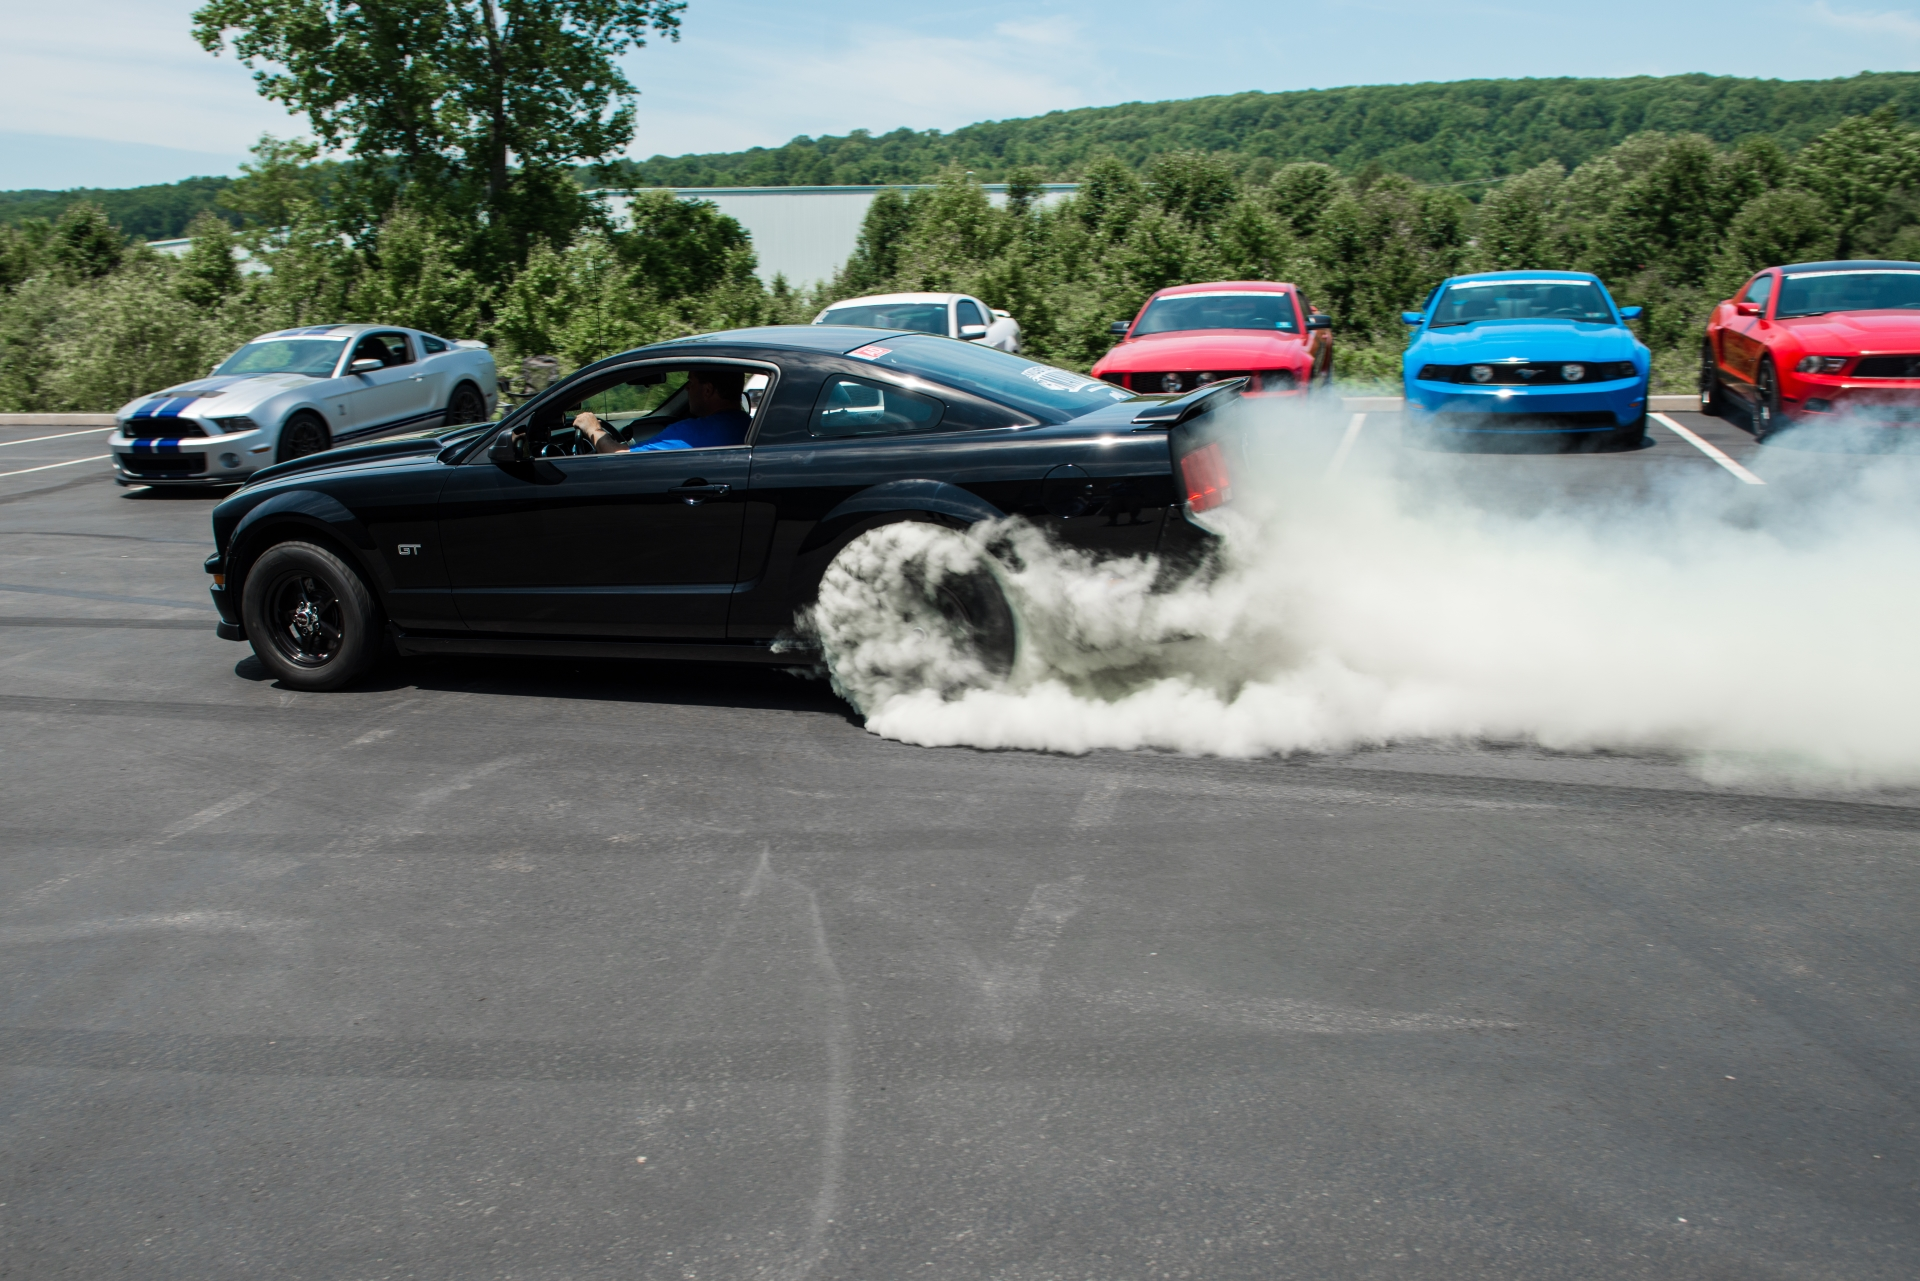 Video: Mustang Mayhem Dyno Event Recap - Over 3,500 RWHP ...mustang burnout